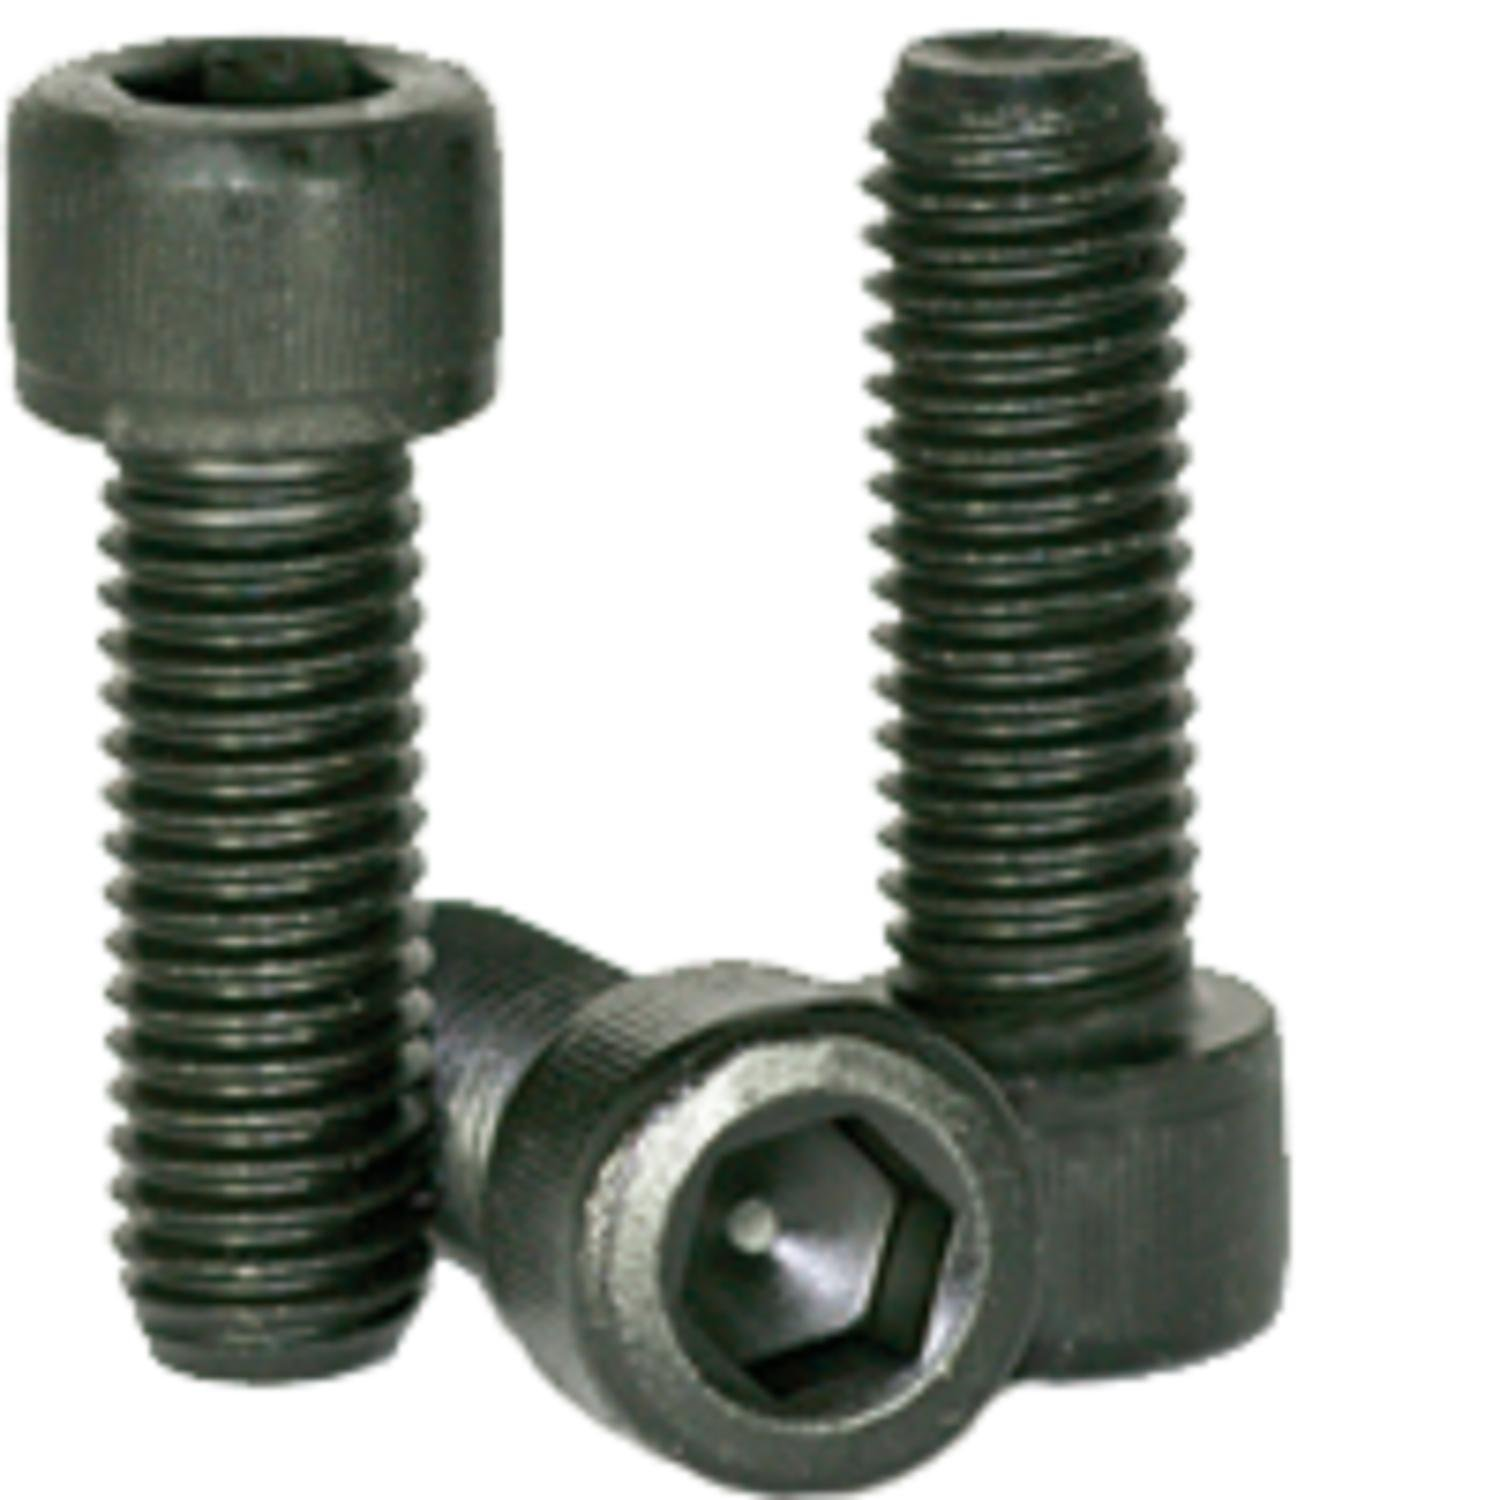 #10-24 x (Choose Length) Socket Head Cap Screw, Fully Threaded, Material: Alloy Steel, Finish: Black Oxide, Size: #10-24, Coarse Thread (UNC) Full Thread, ROHS Compliant